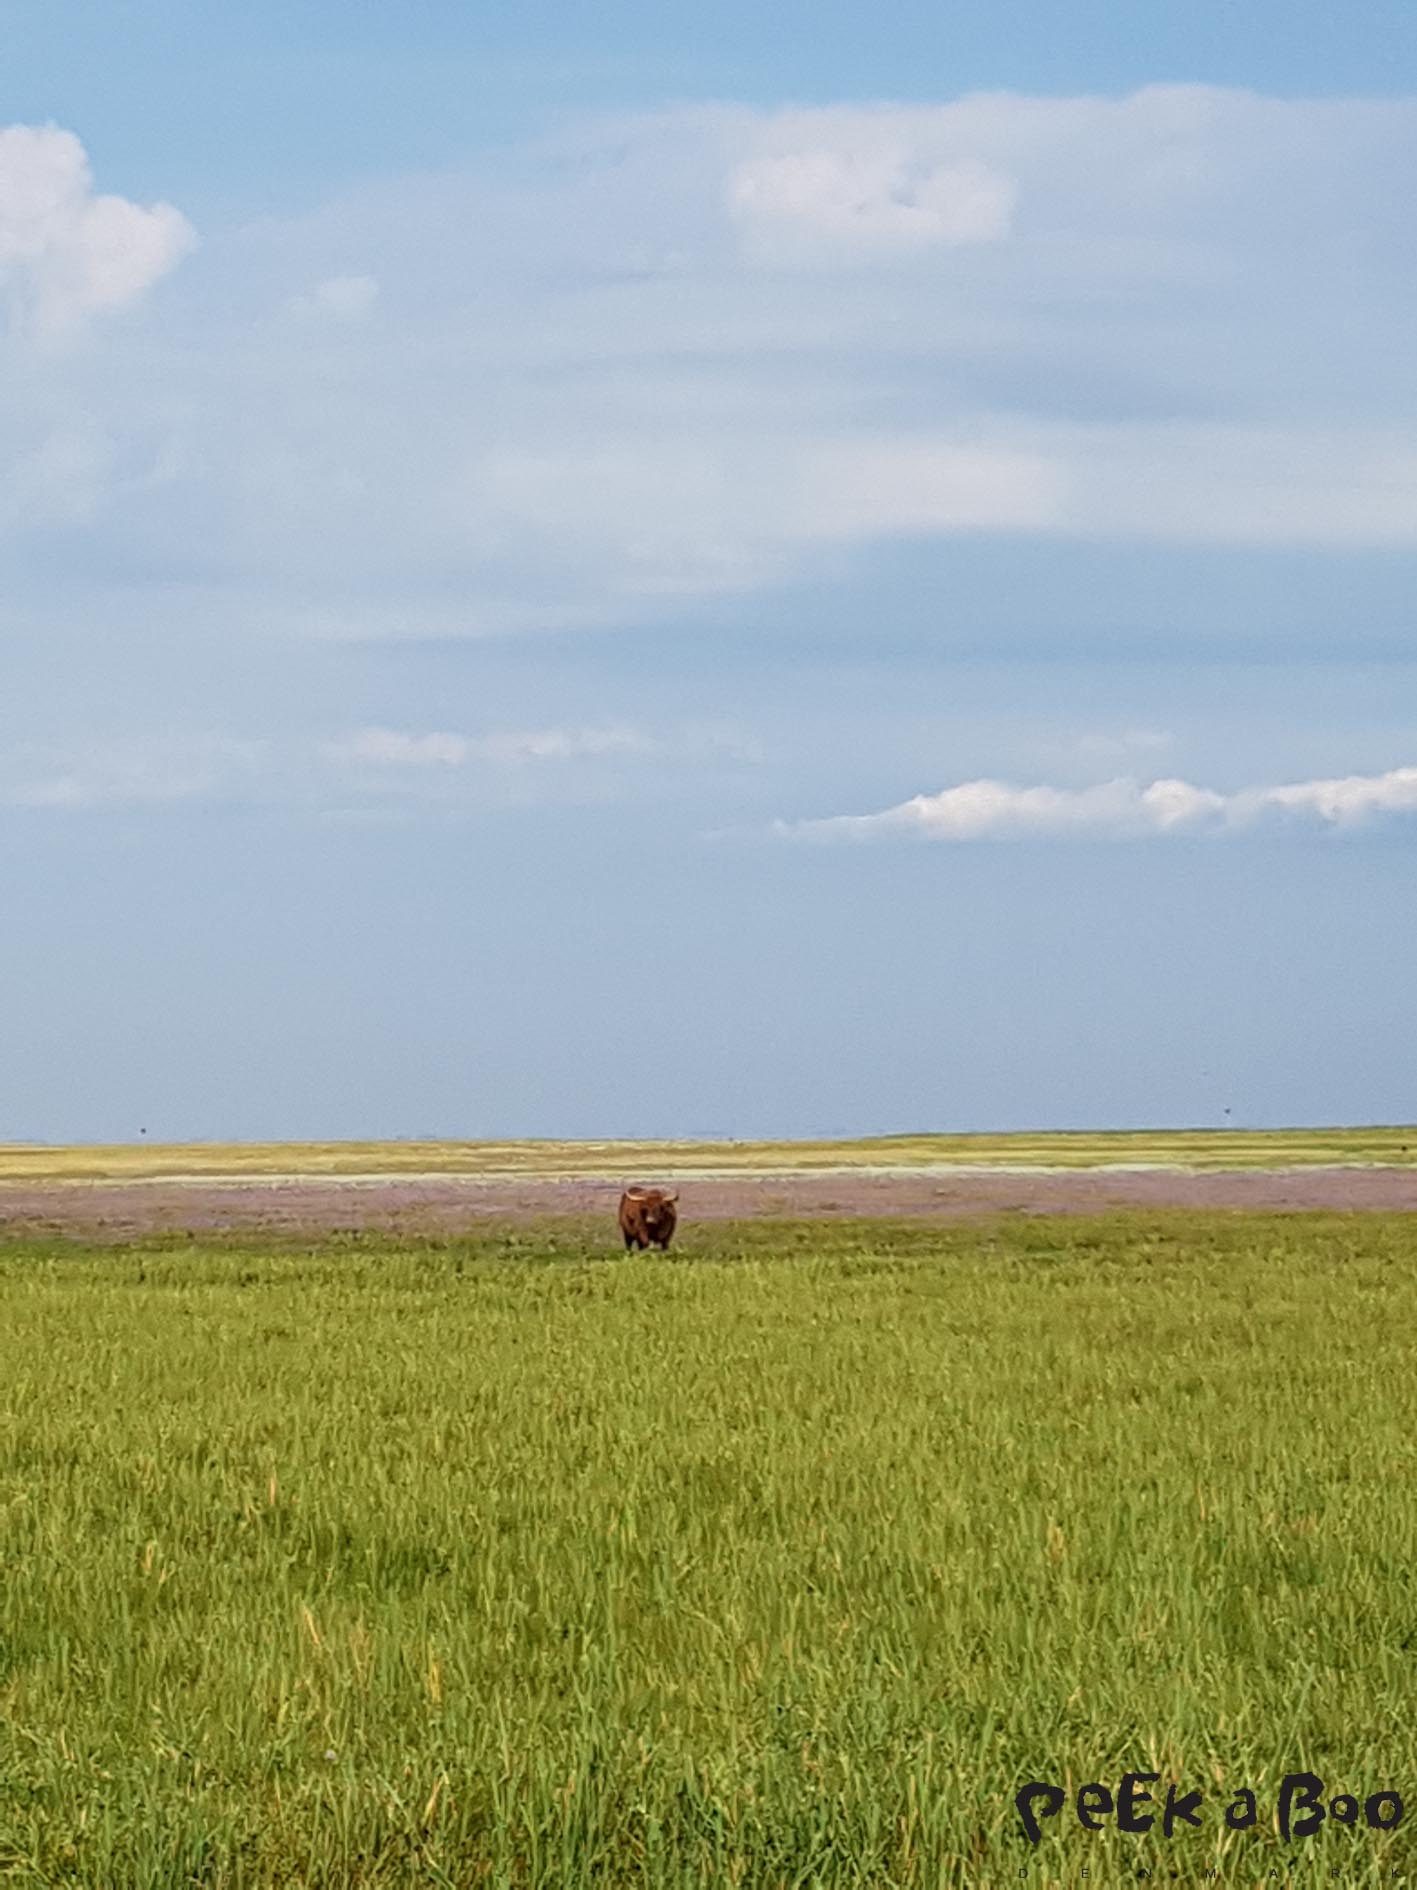 The area was earlier covered with water but now it is meadow where the cows grass.